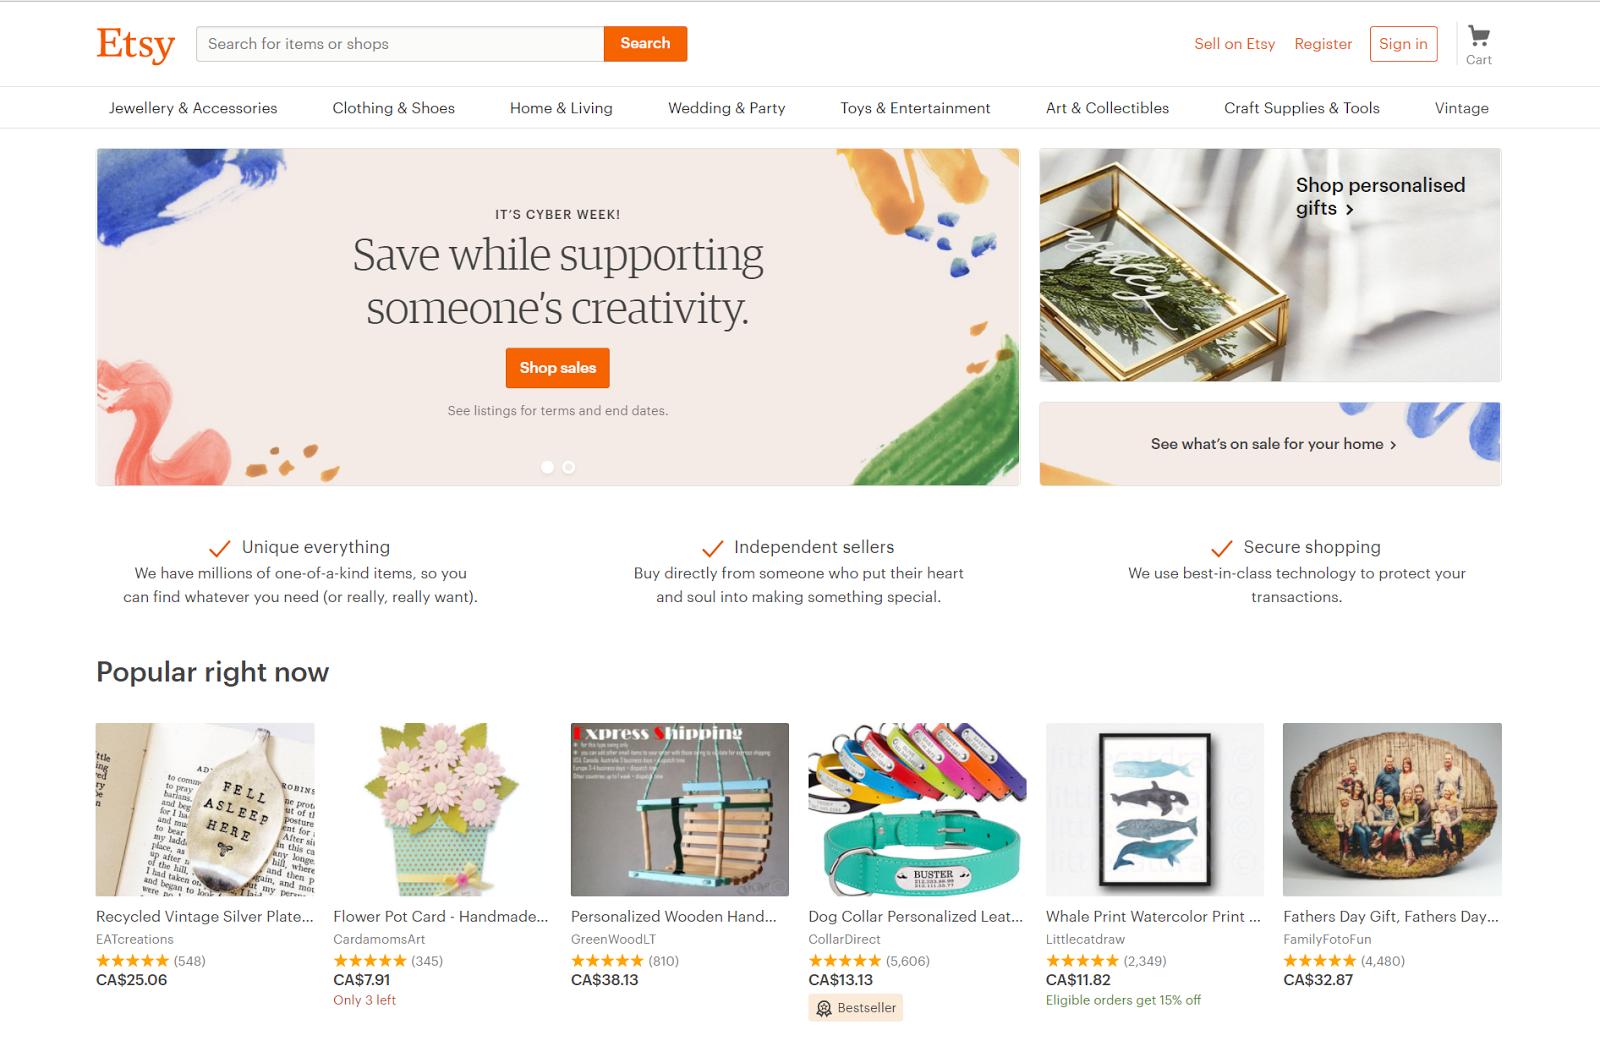 10 Conversion Lessons For Online Retail from Amazon